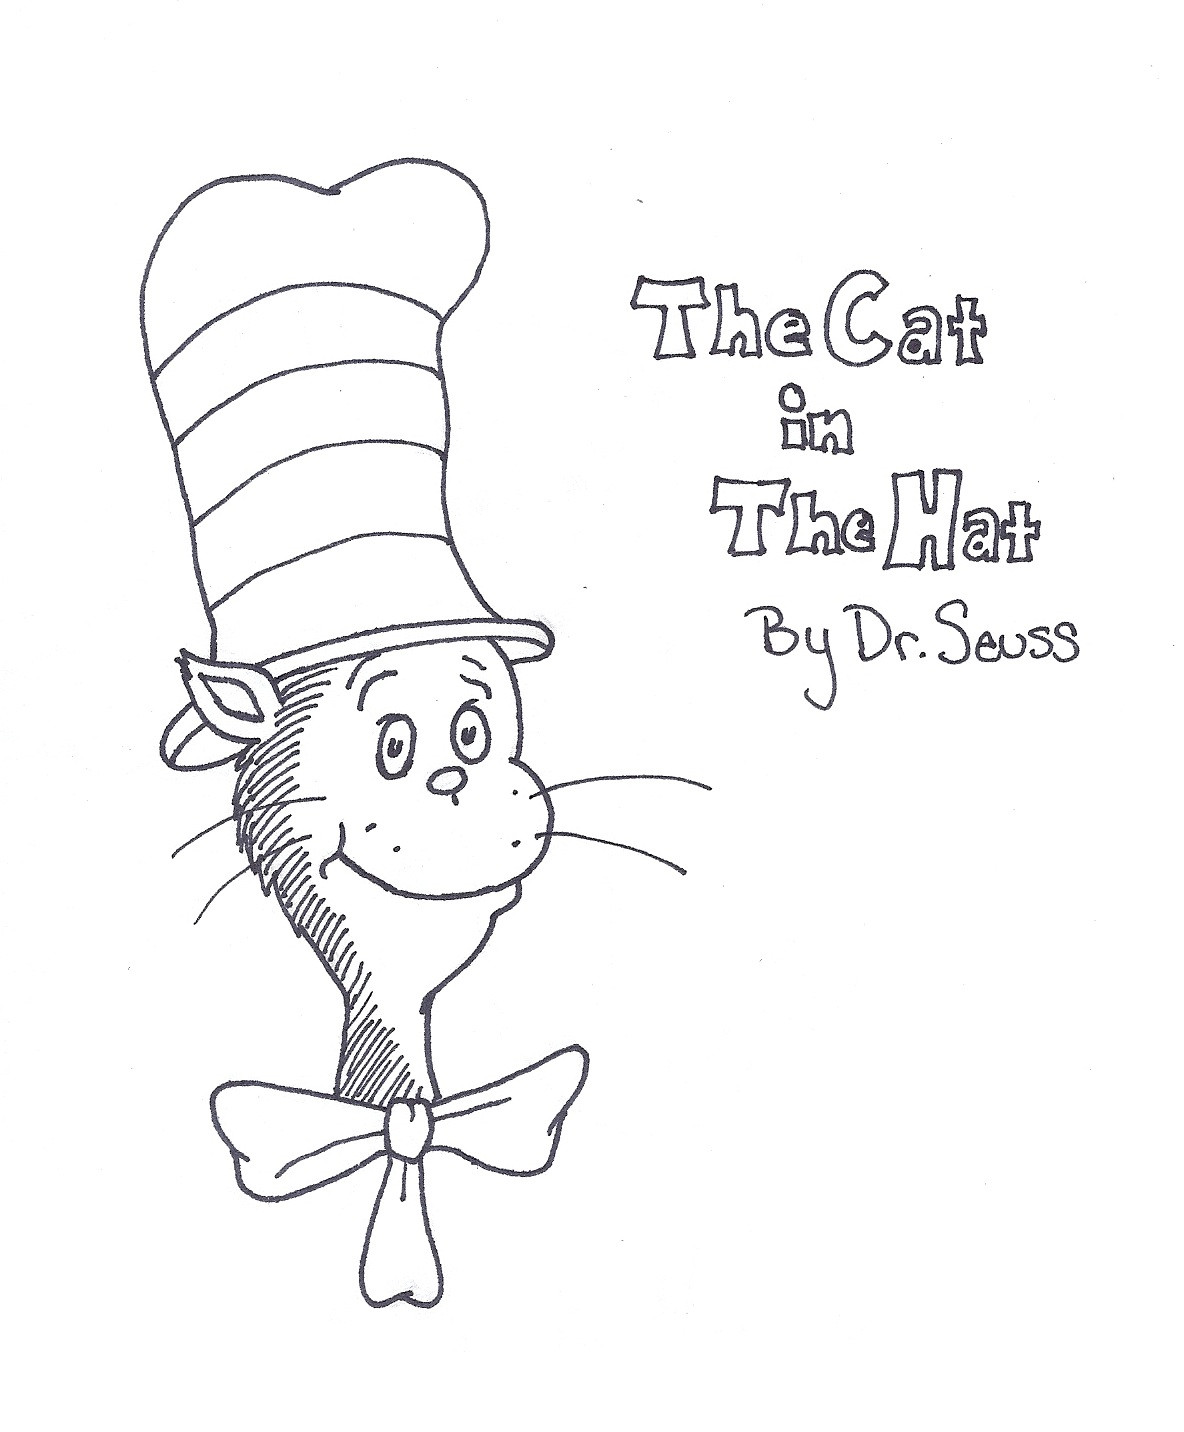 Free Printable Dr.Seuss Coloring Pages  Dr Seuss Printable Coloring Pages